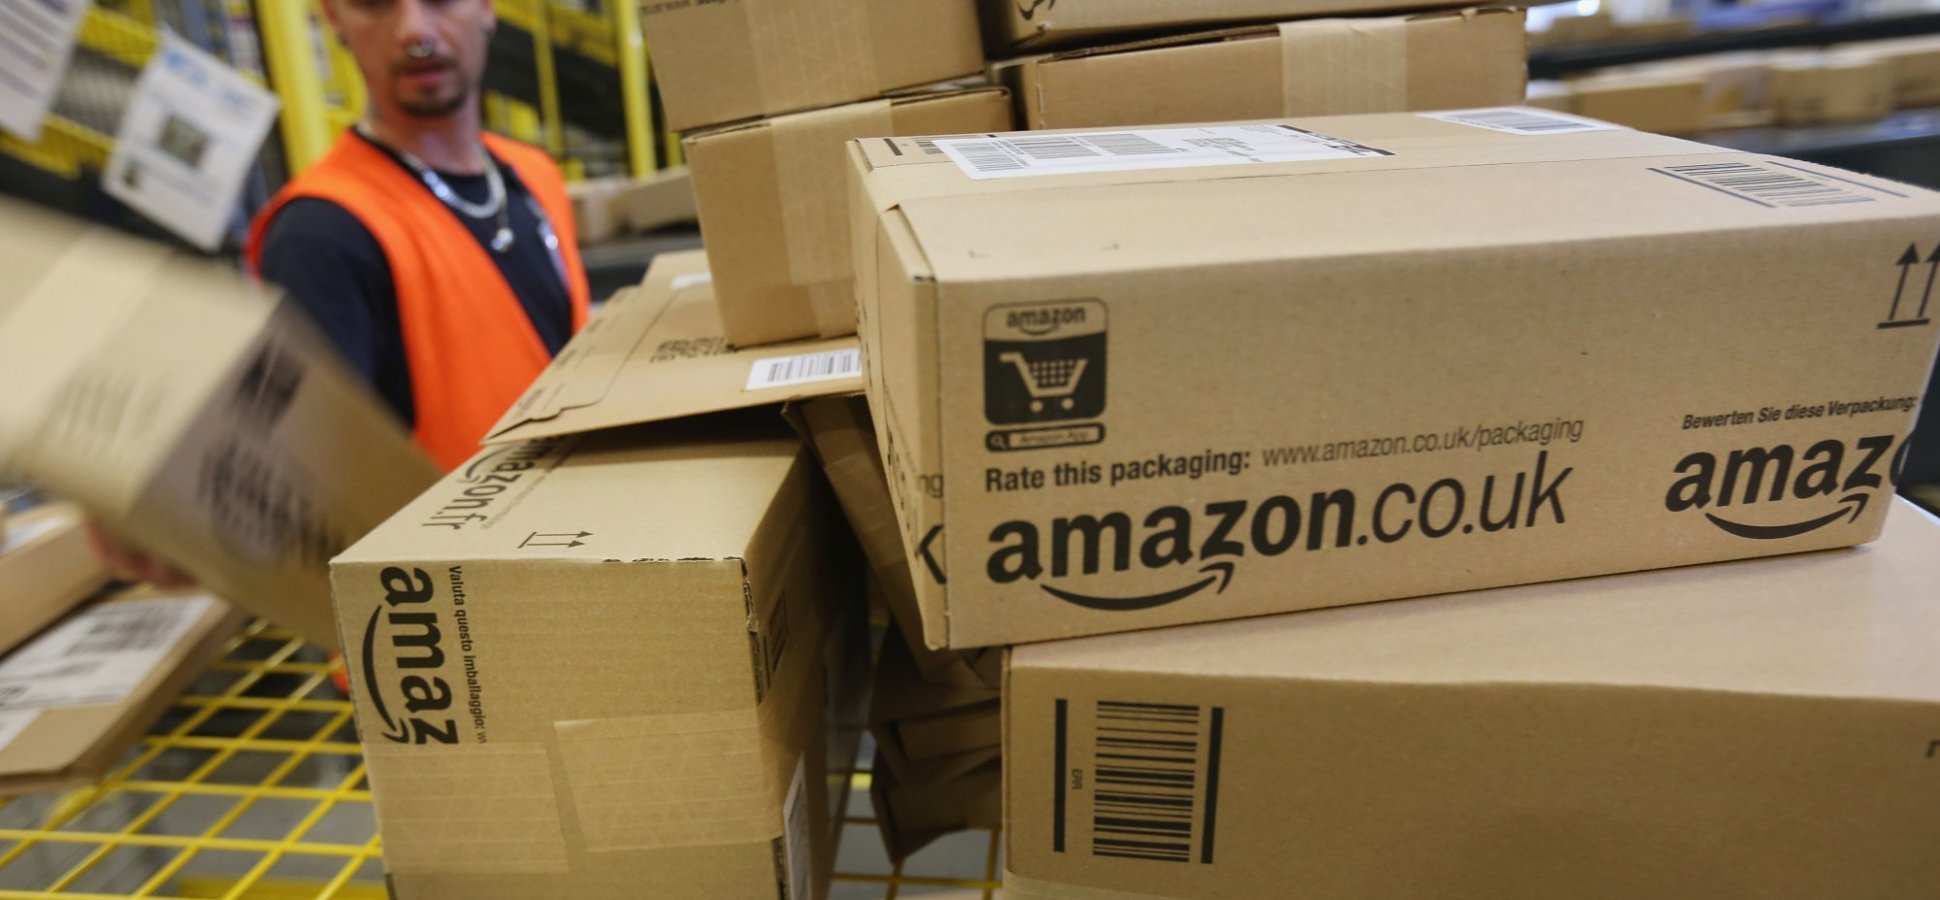 You Can Bemoan that Amazon is Taking Over the World, or You Could Do What This Company Did Instead